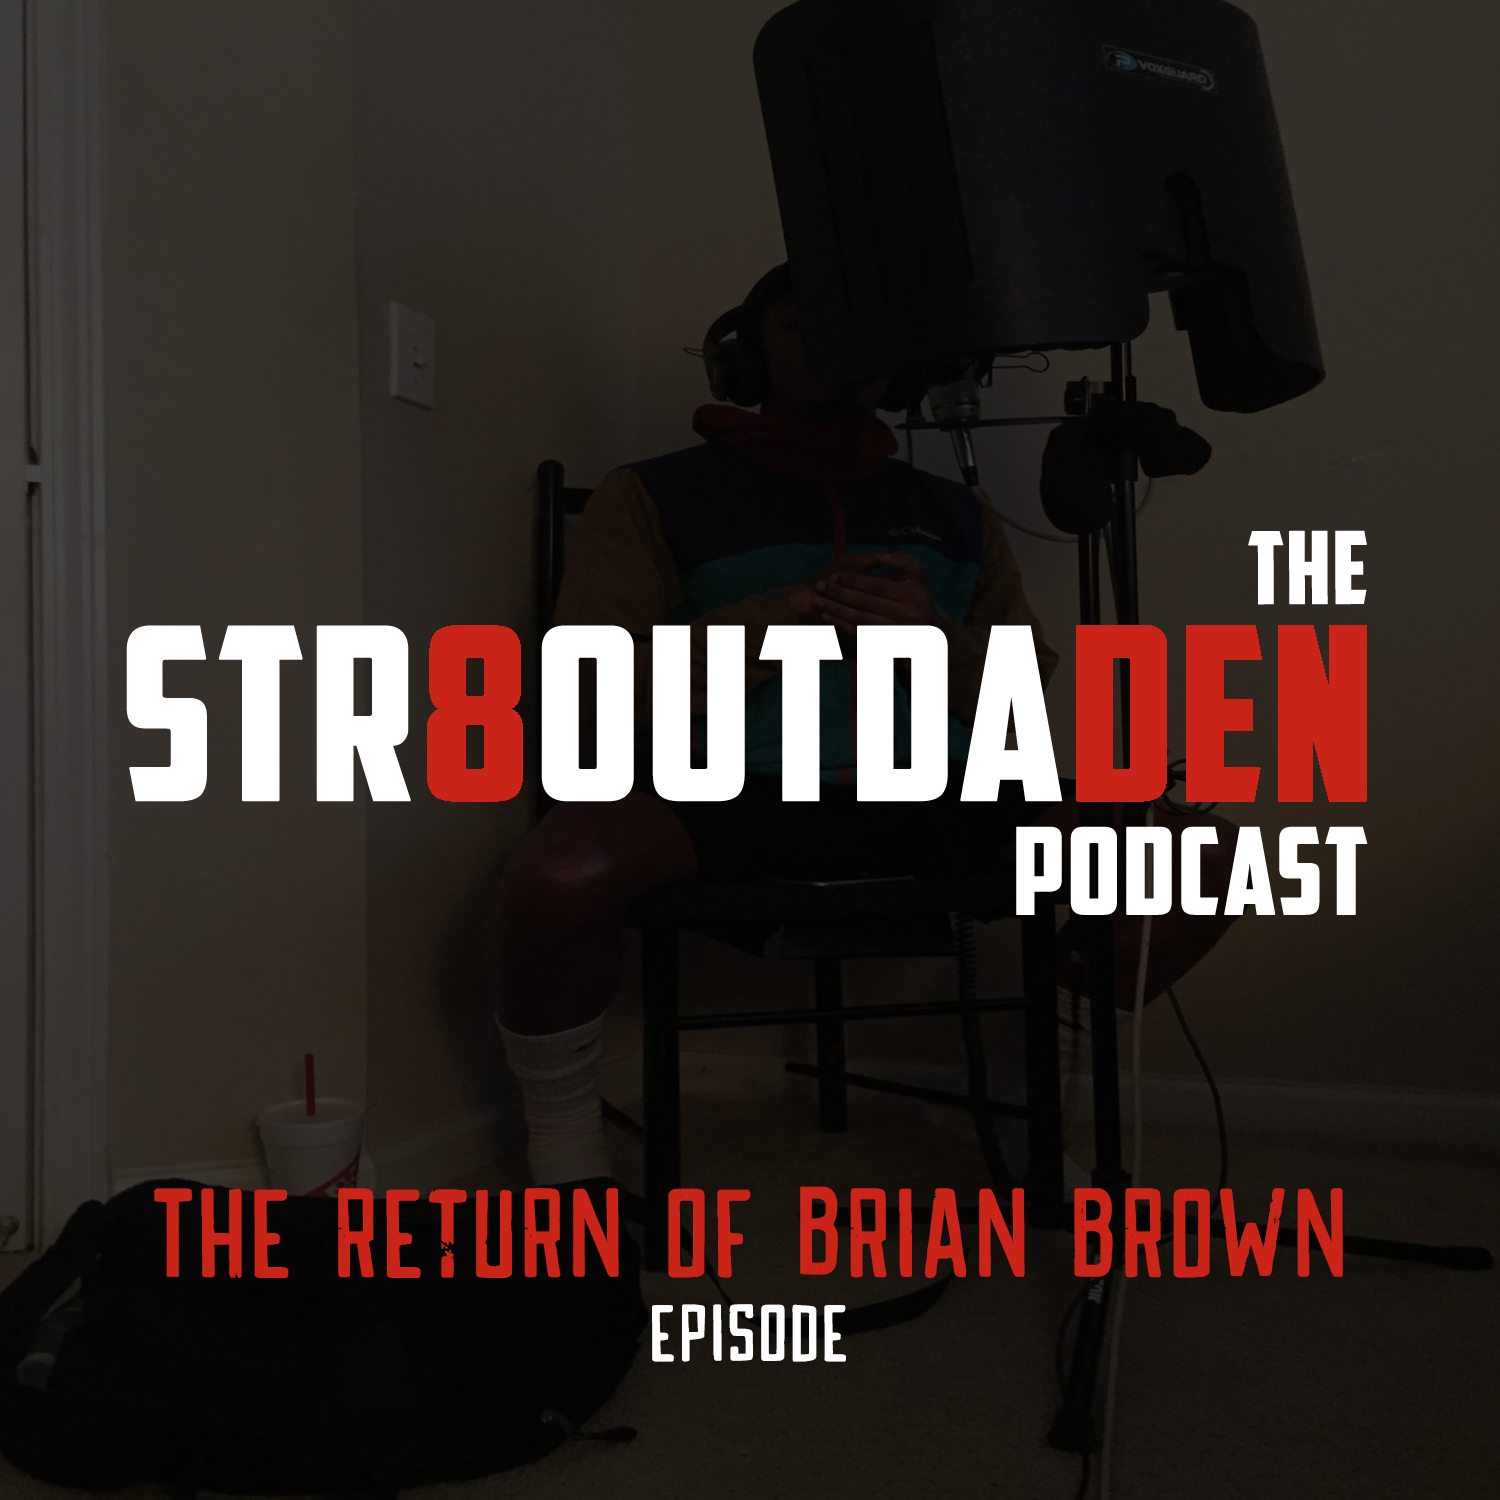 The Return Of Brian Brown